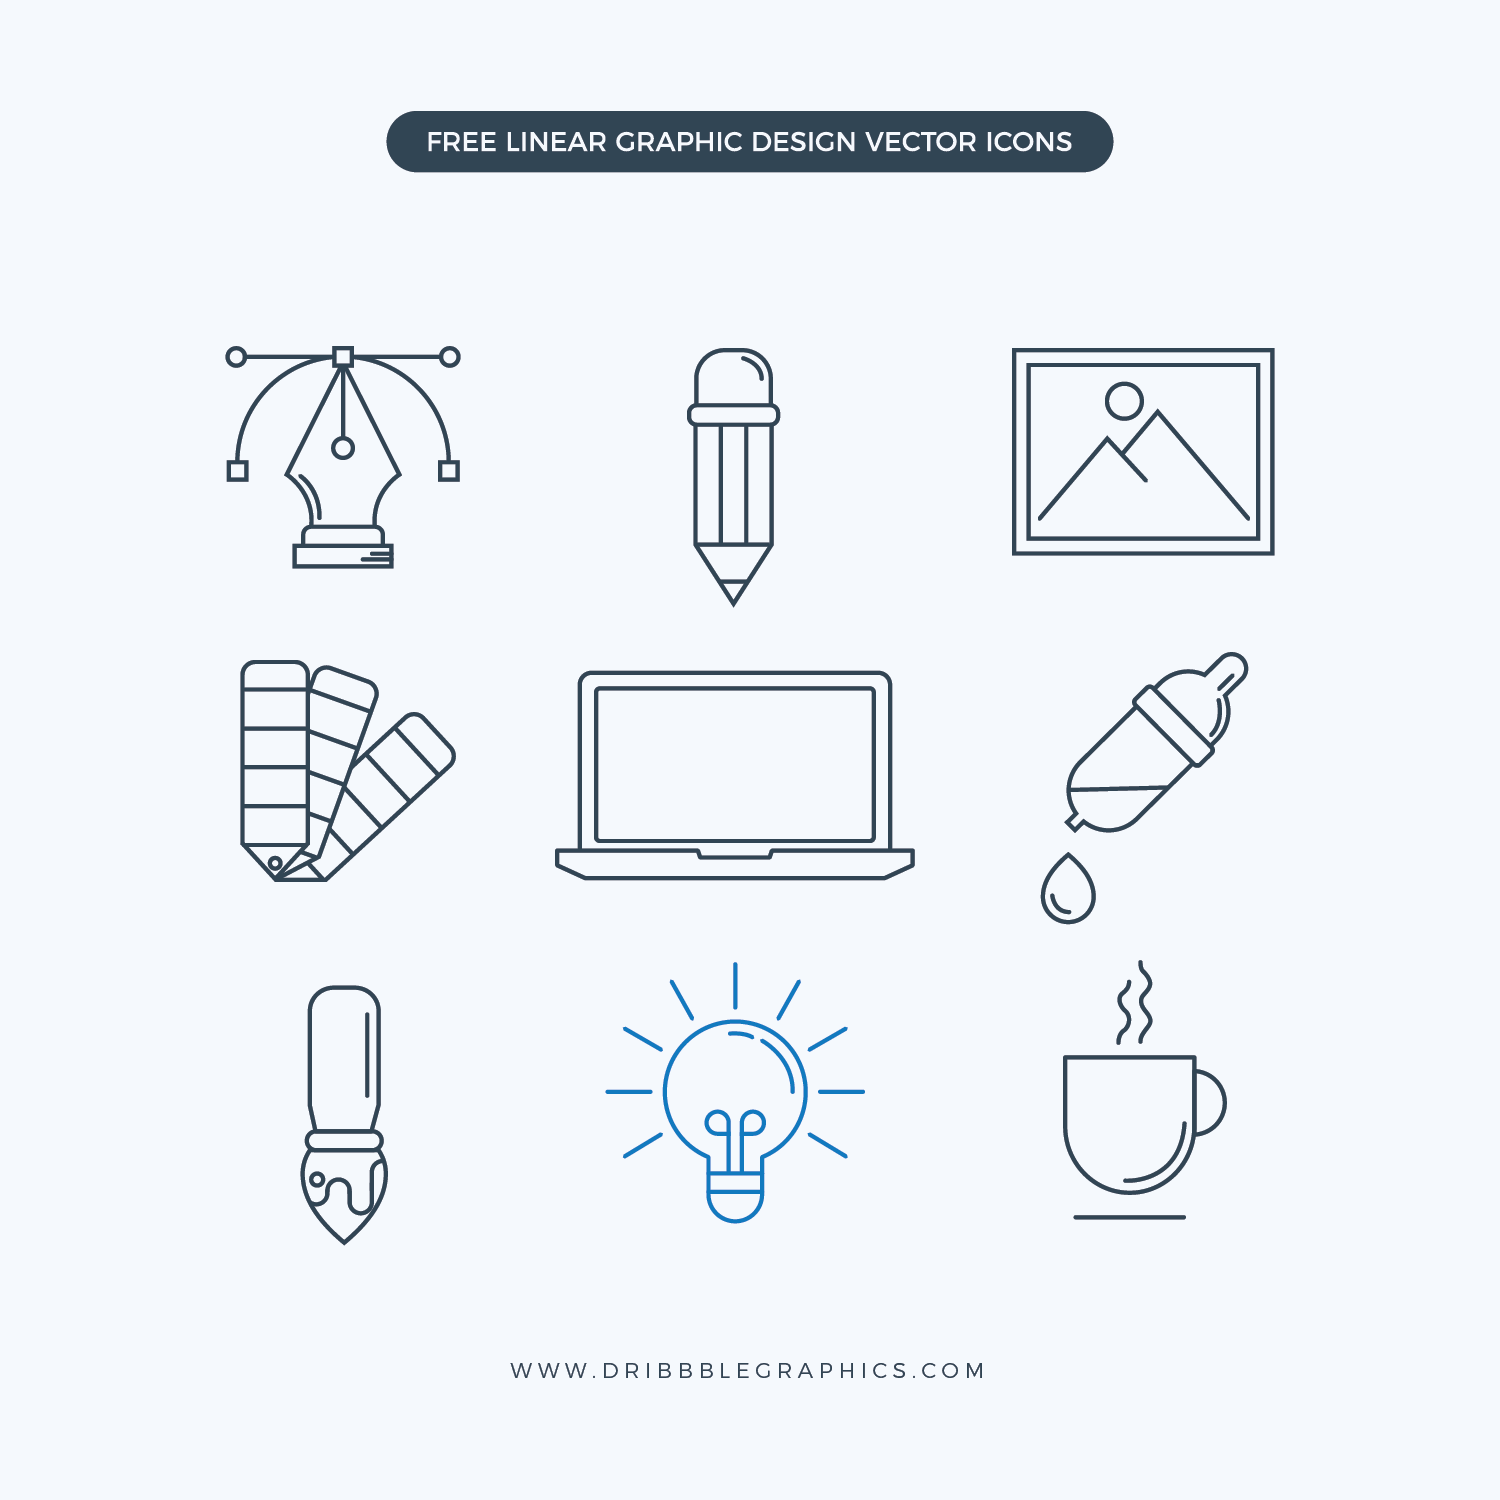 Free Linear Graphic Design Vector Icons